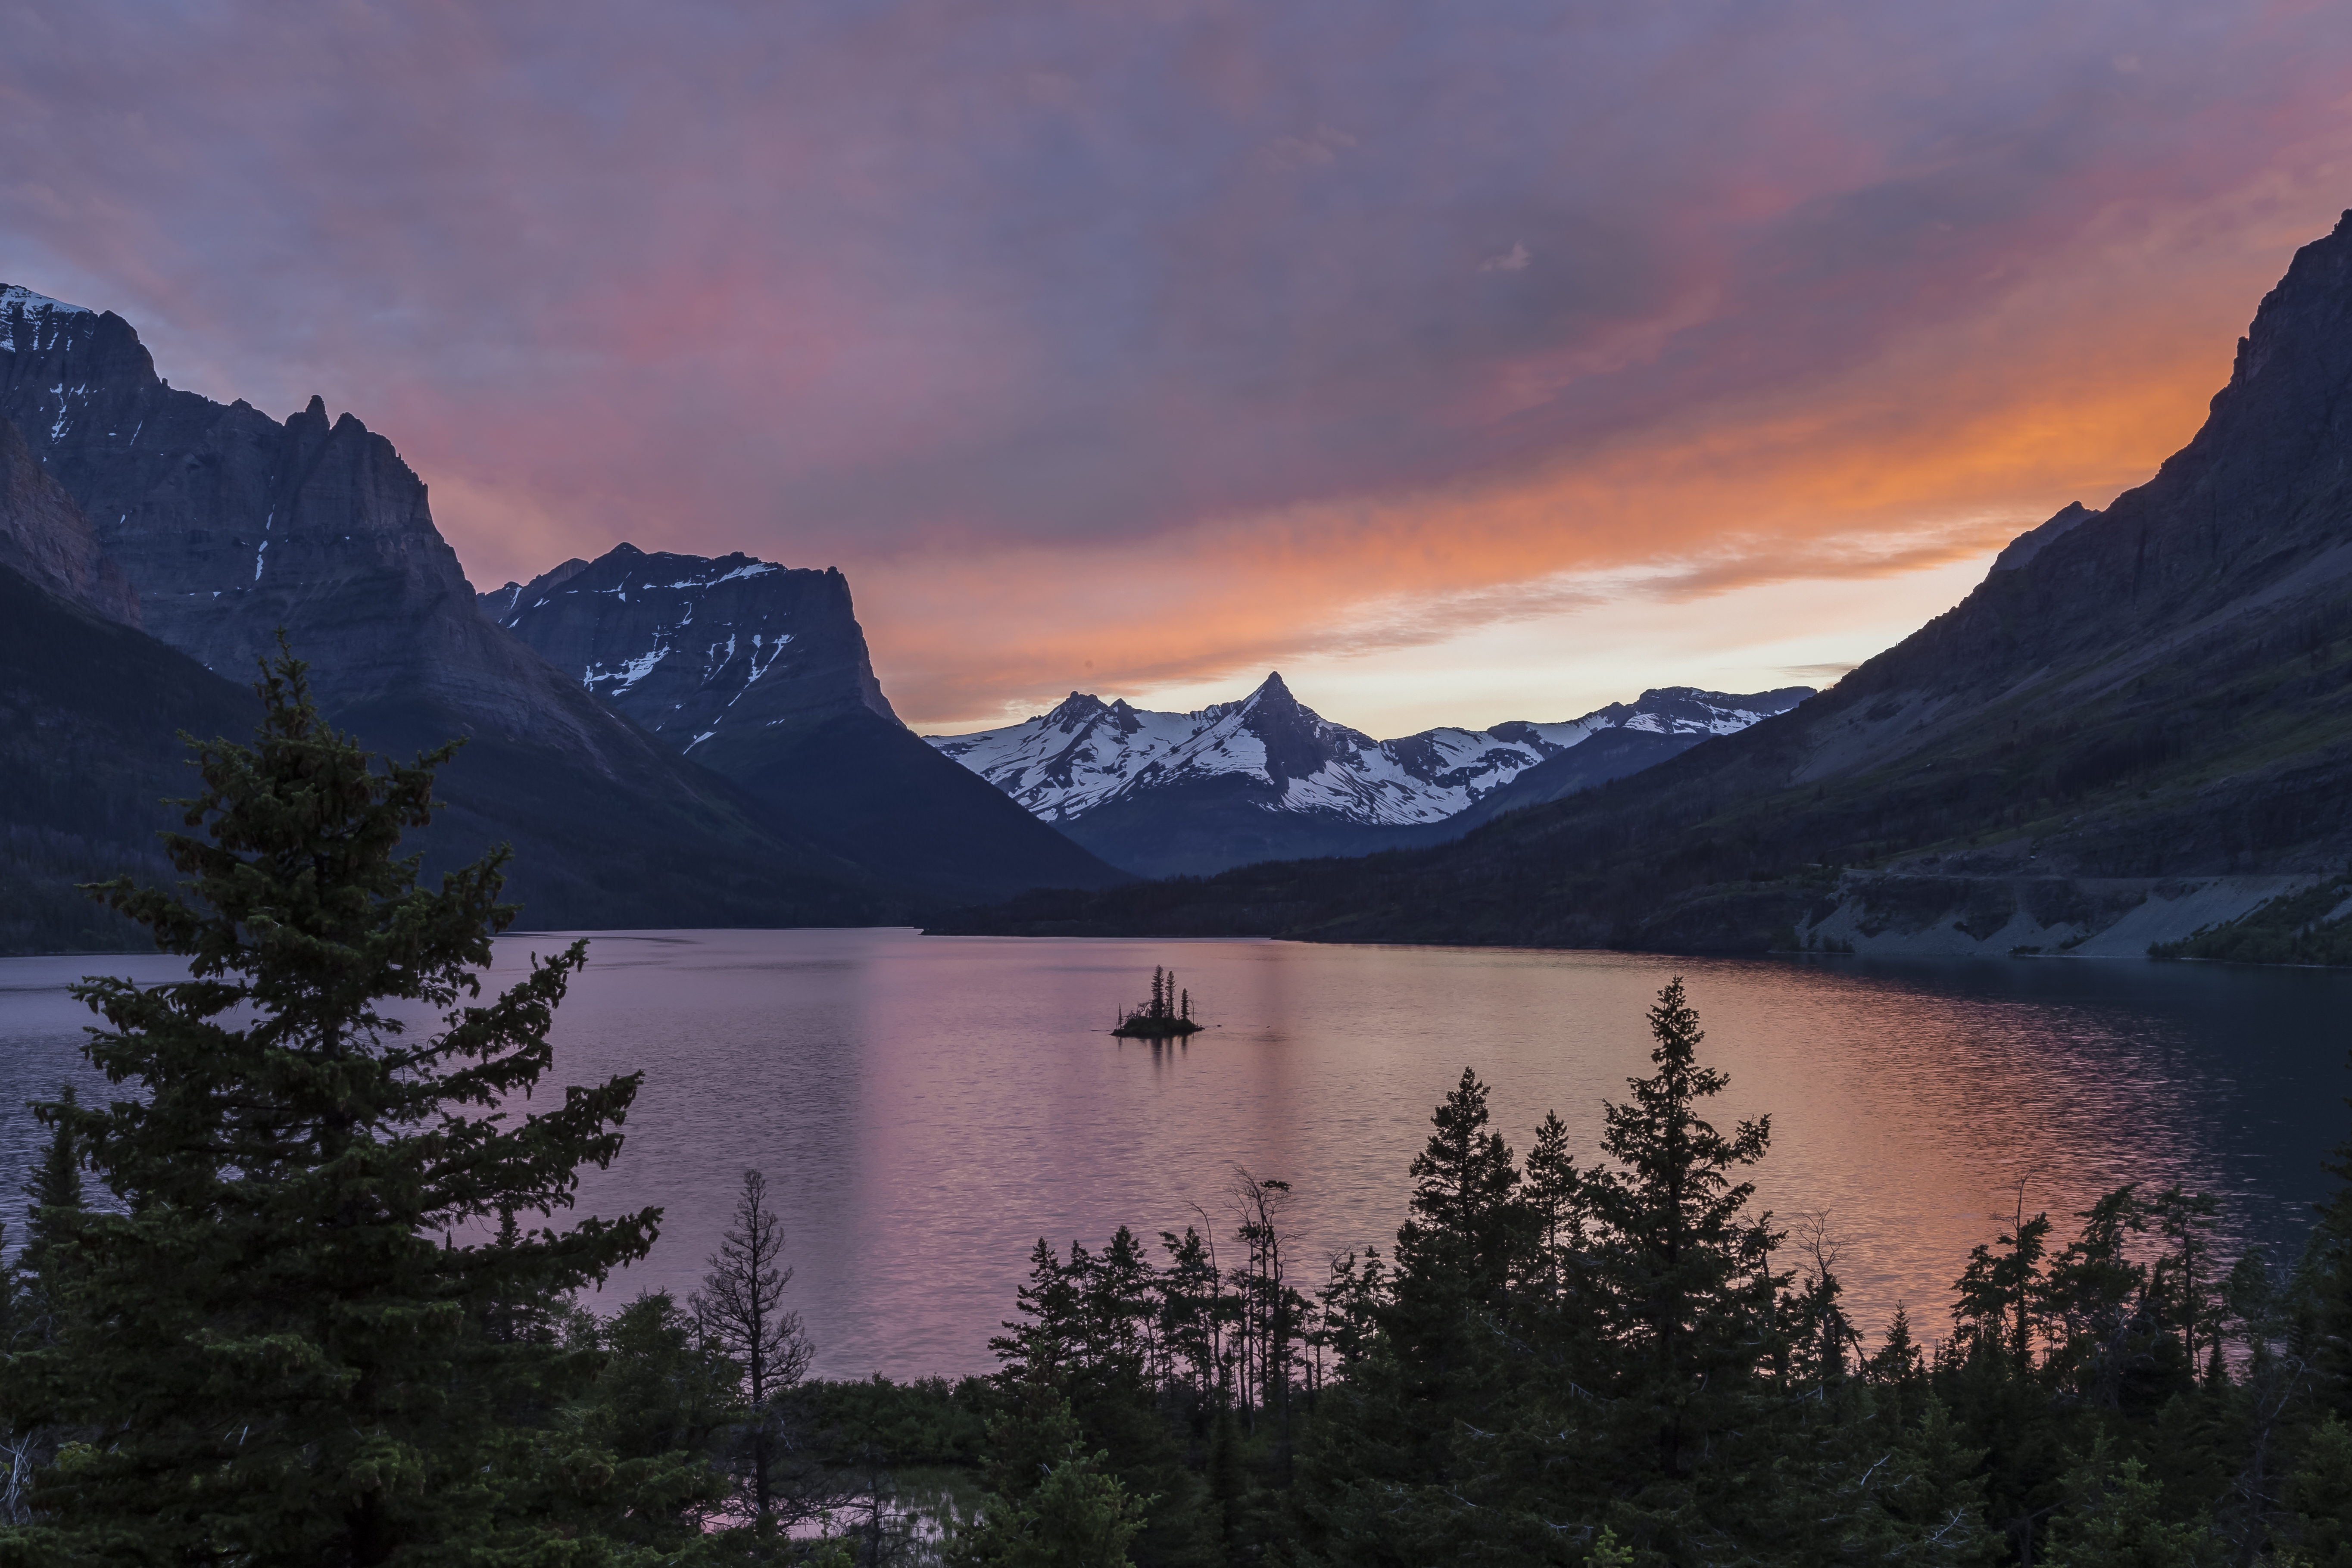 Sunset - St. Mary's Lake Glacier National Park